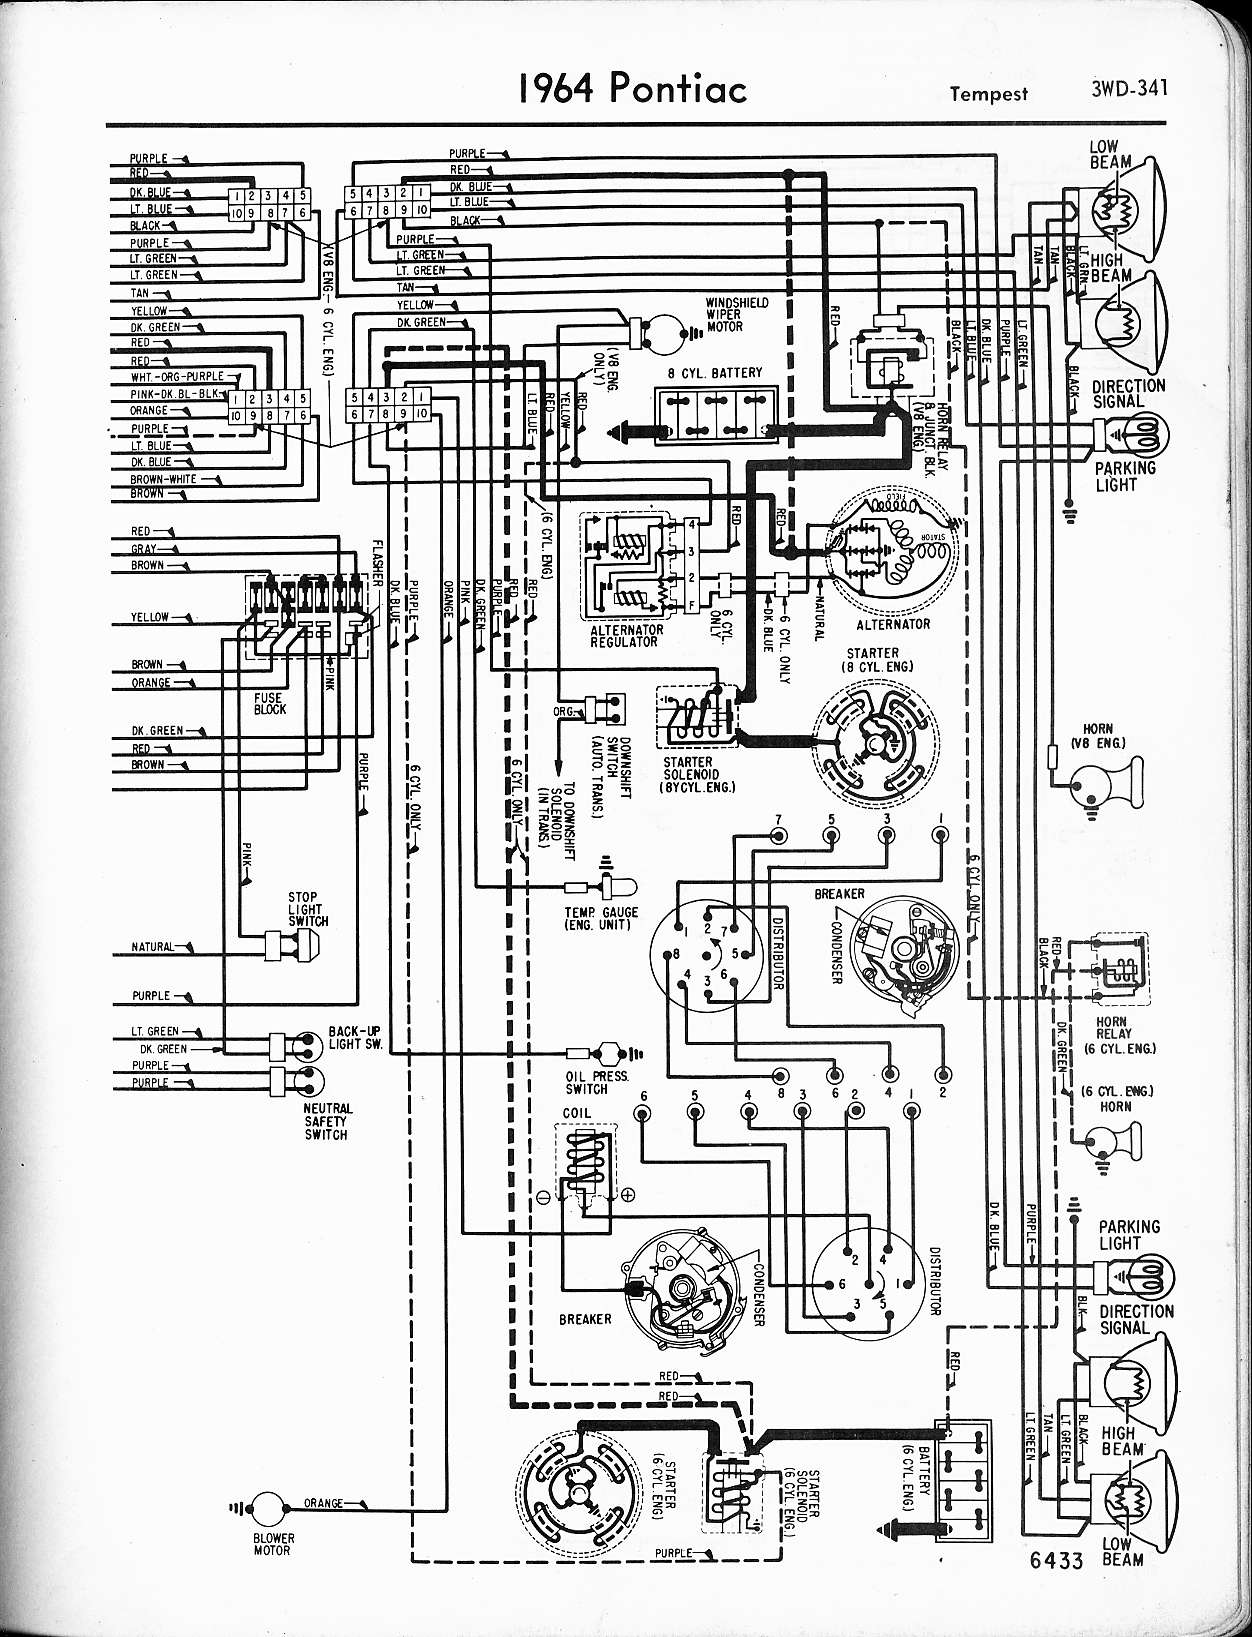 1964 gto wiring diagram online schematic diagram u2022 rh holyoak co 1966 GTO Wiring-Diagram Blower Moter 1964 GTO Engine Wiring-Diagram